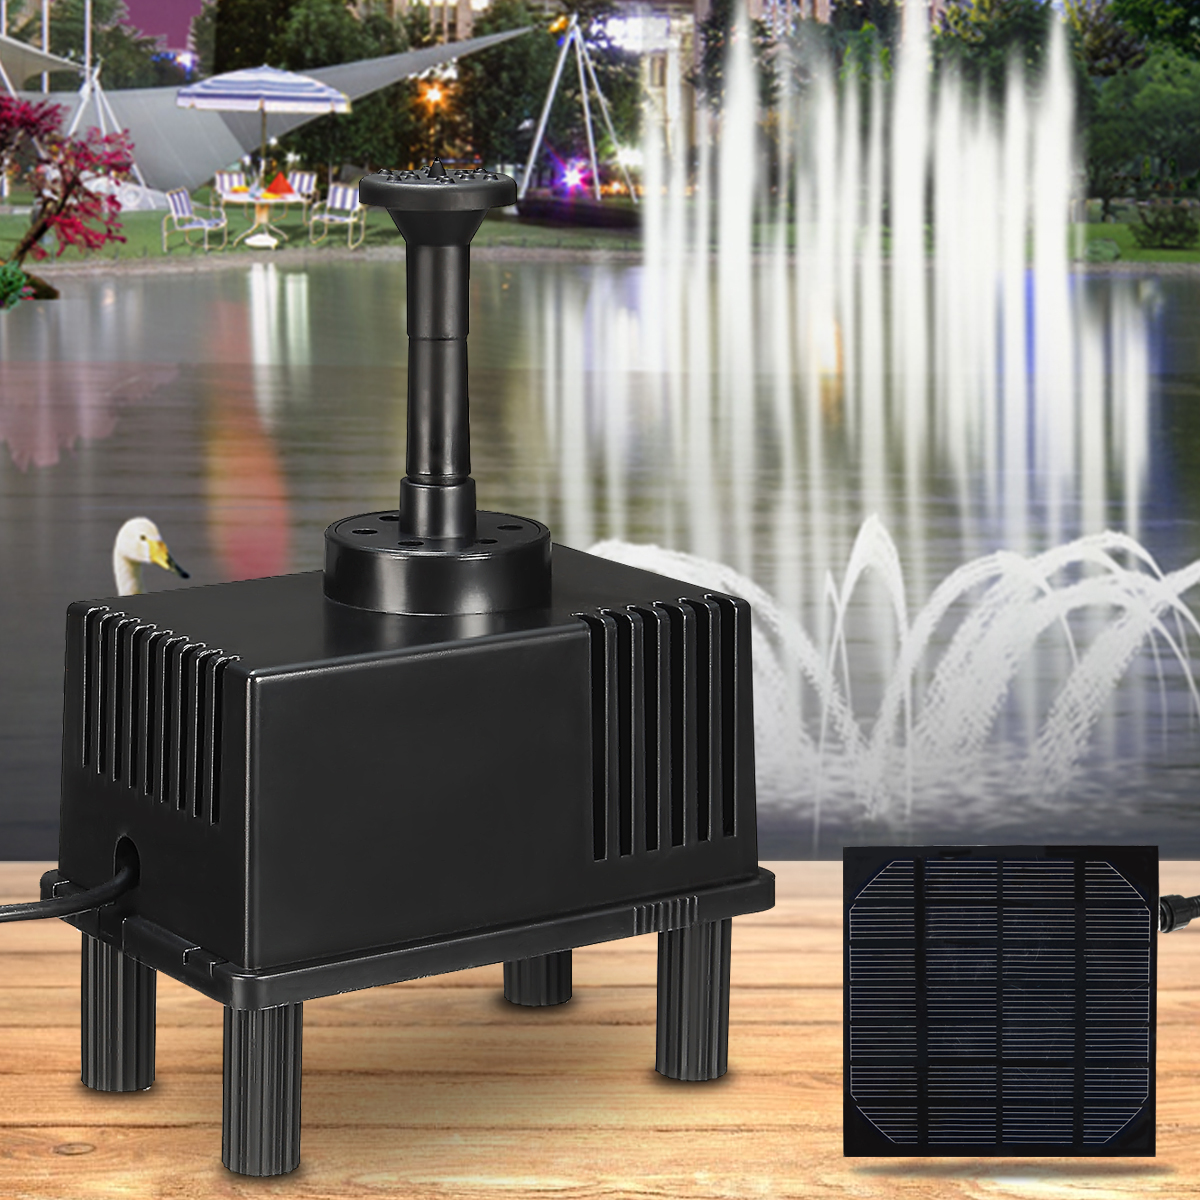 Solar Panel Power Water Pump for Fountain Garden Rockery Landscape Aquarium Fish Tank Pool Pond Submersible Watering PumpSolar Panel Power Water Pump for Fountain Garden Rockery Landscape Aquarium Fish Tank Pool Pond Submersible Watering Pump